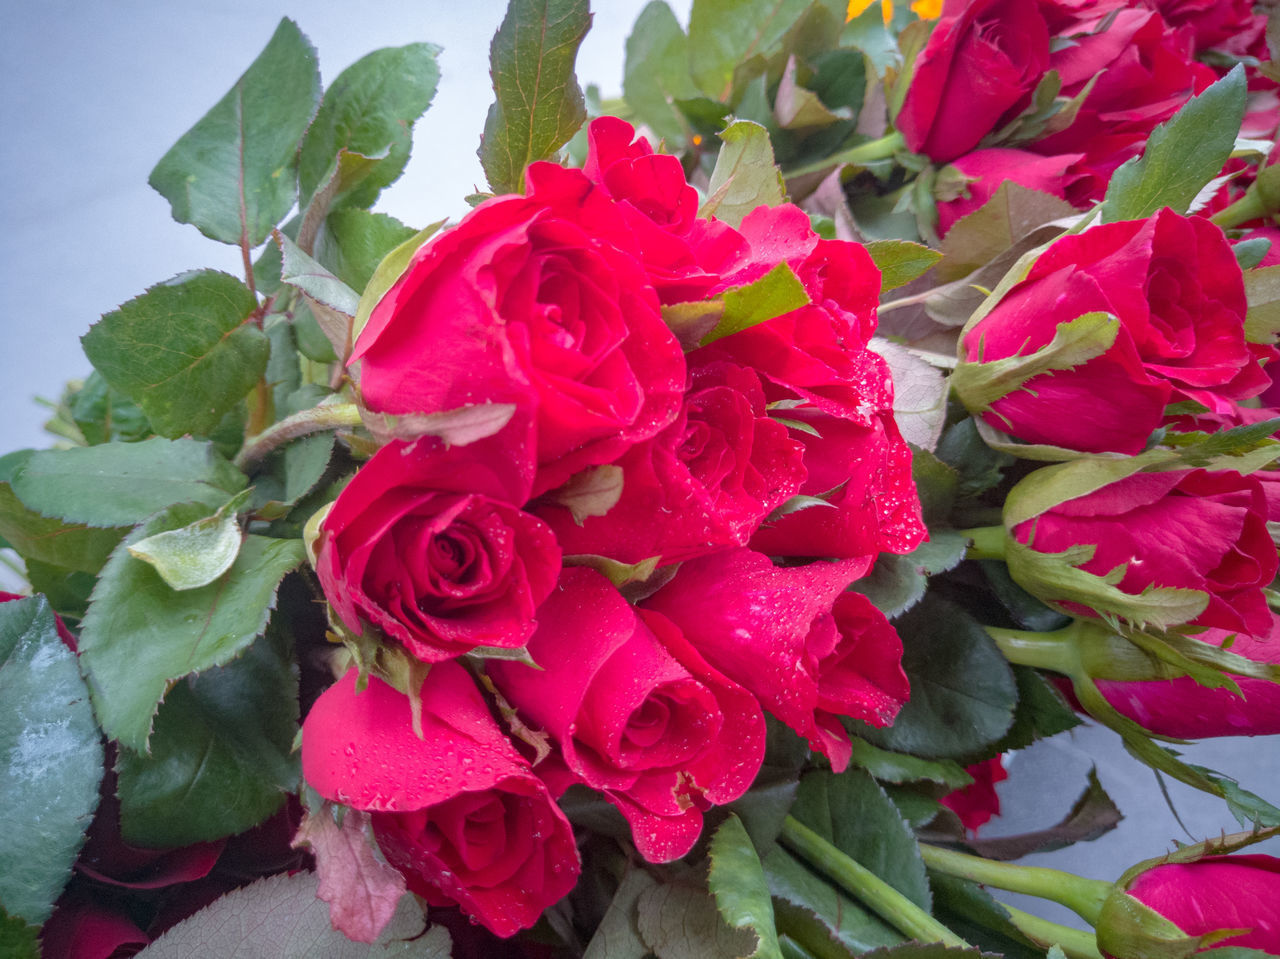 beauty in nature, freshness, flowering plant, red, petal, rose, flower, close-up, leaf, plant part, flower head, inflorescence, rose - flower, plant, nature, vulnerability, fragility, growth, no people, high angle view, flower arrangement, bouquet